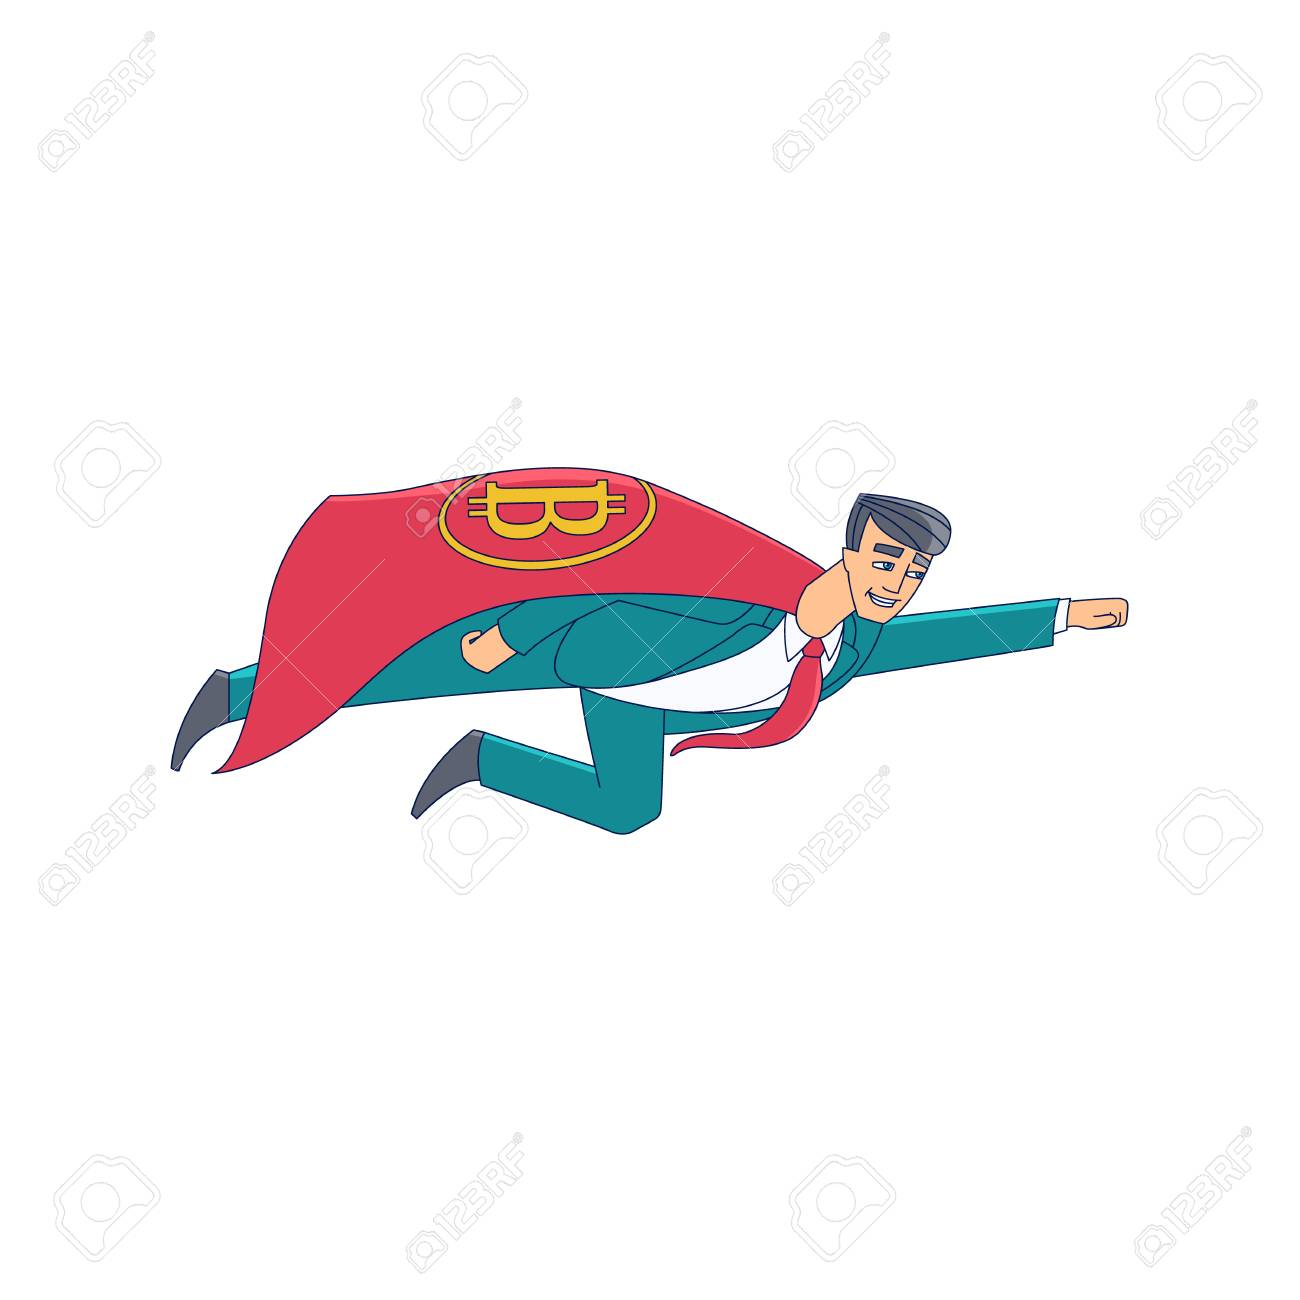 superman coin cryptocurrency